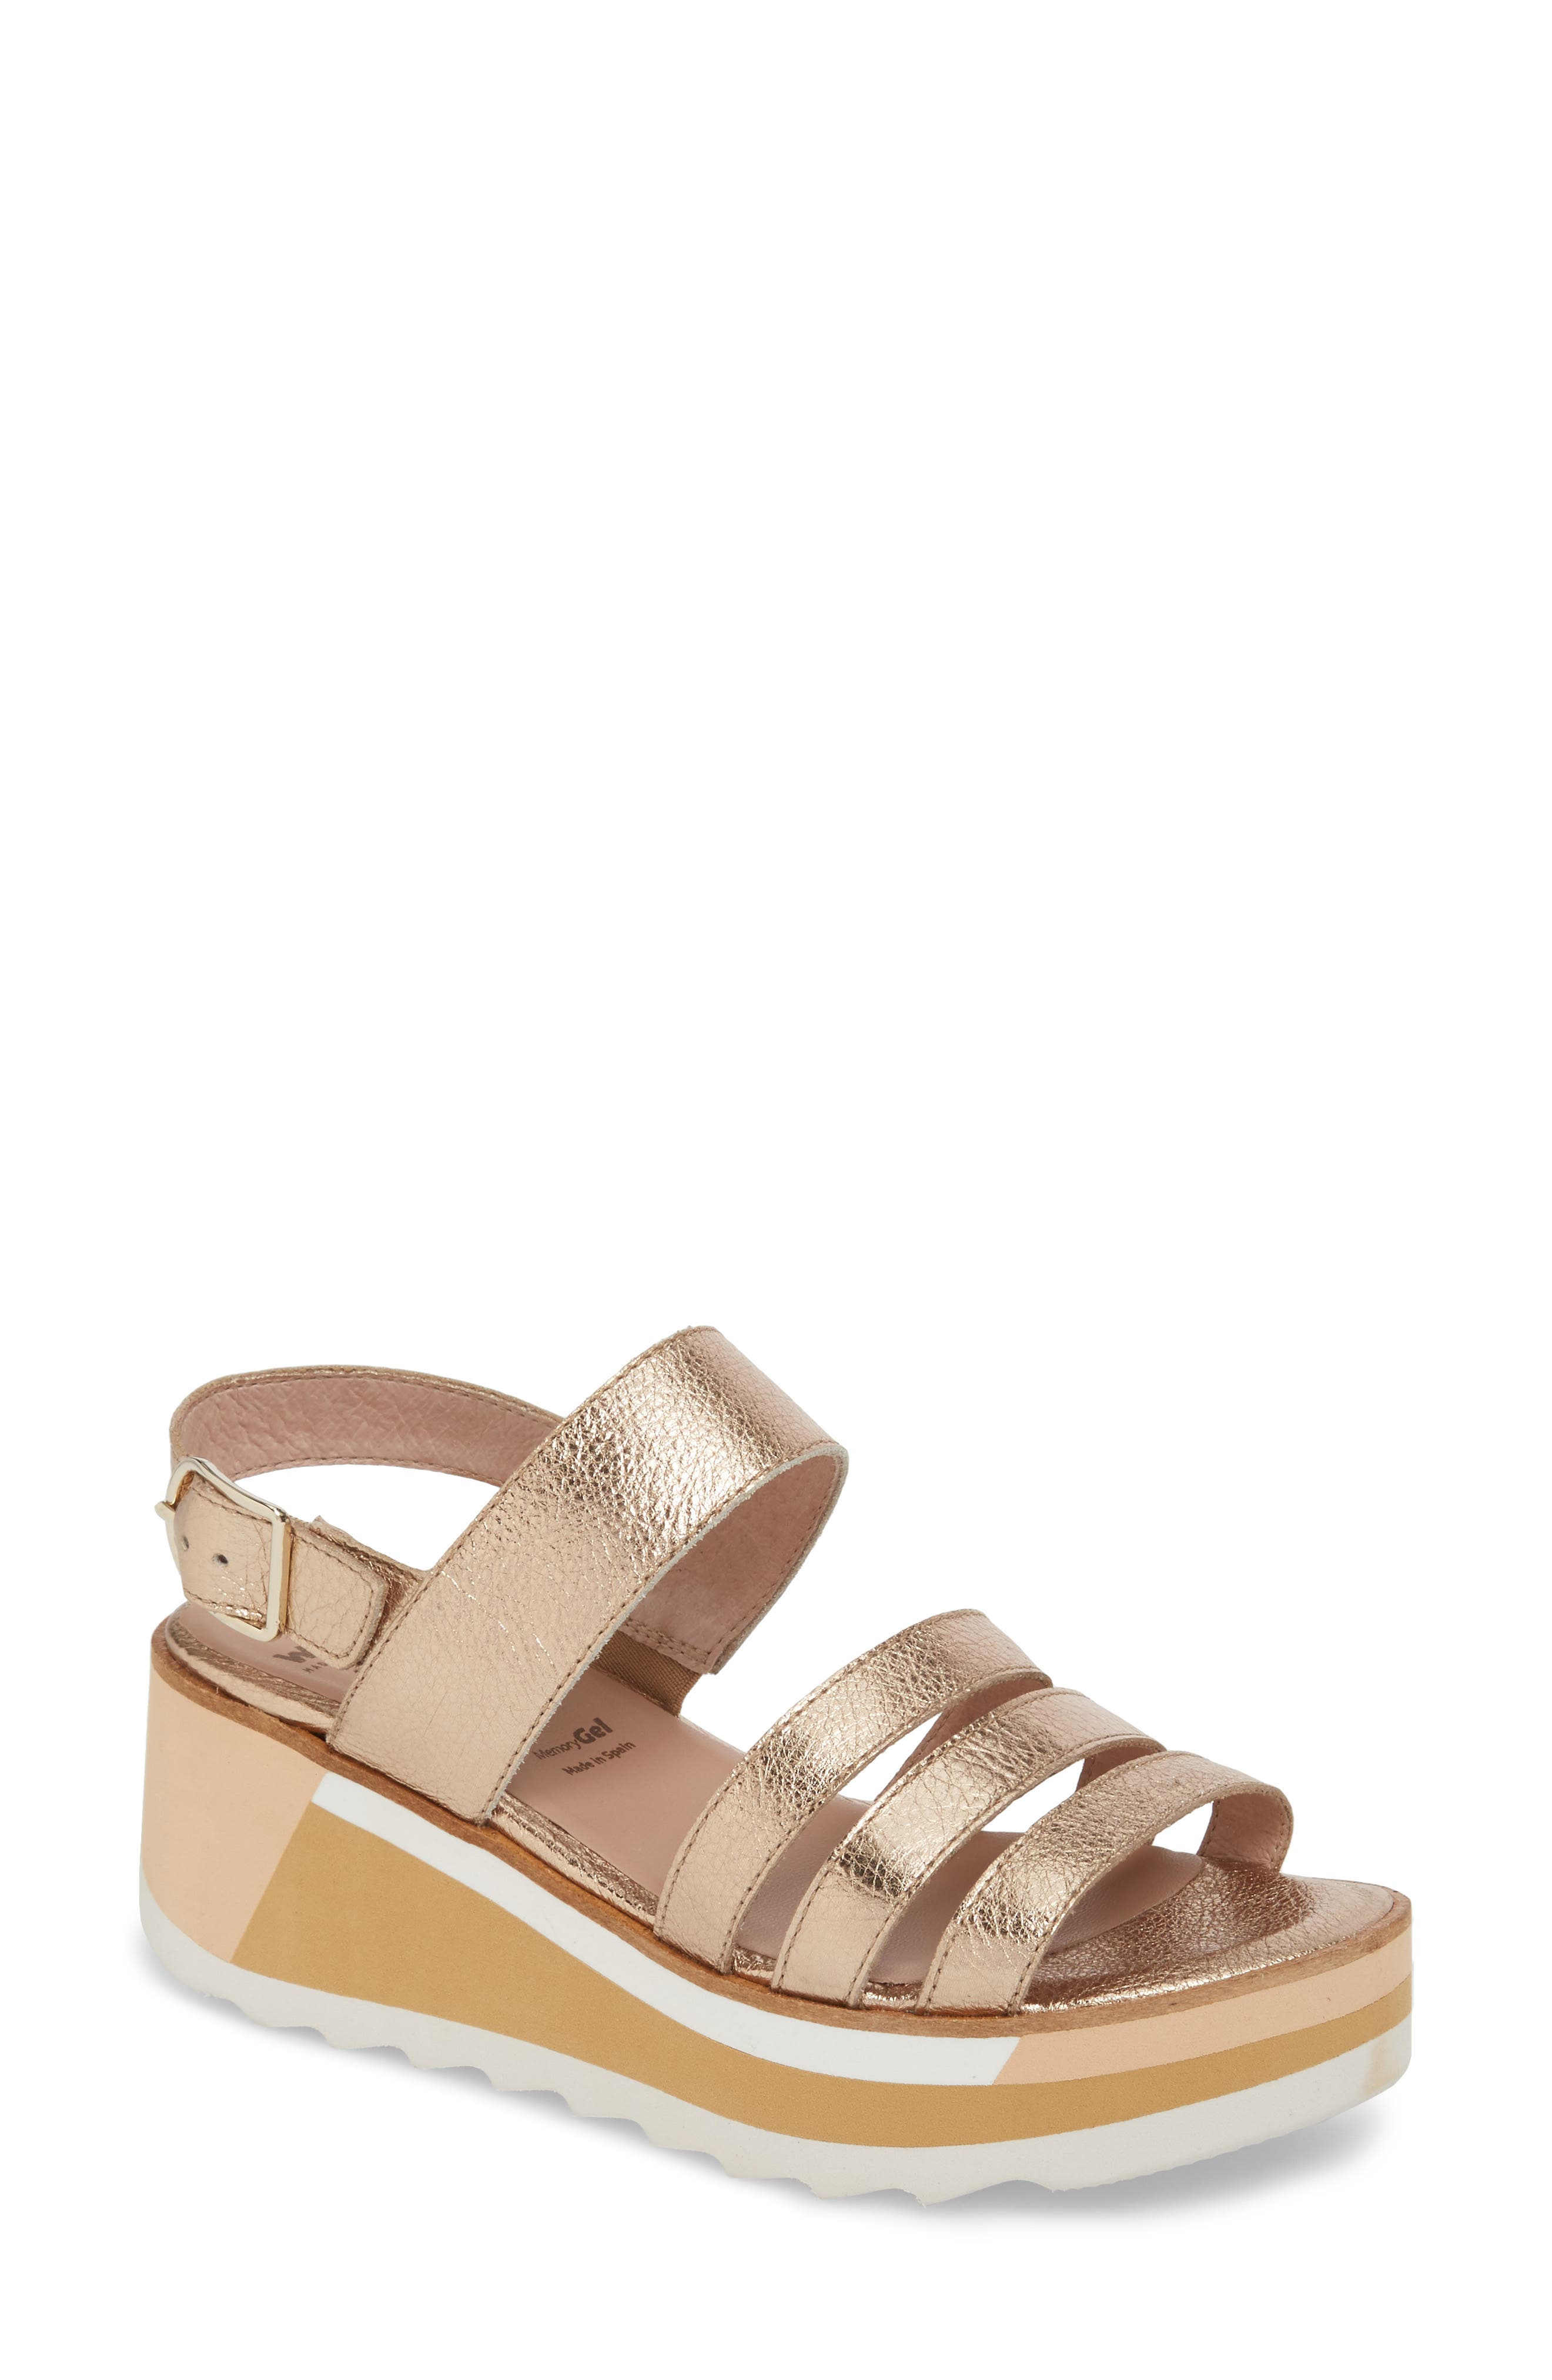 Wonders Slingback Wedge Sandal, Grey